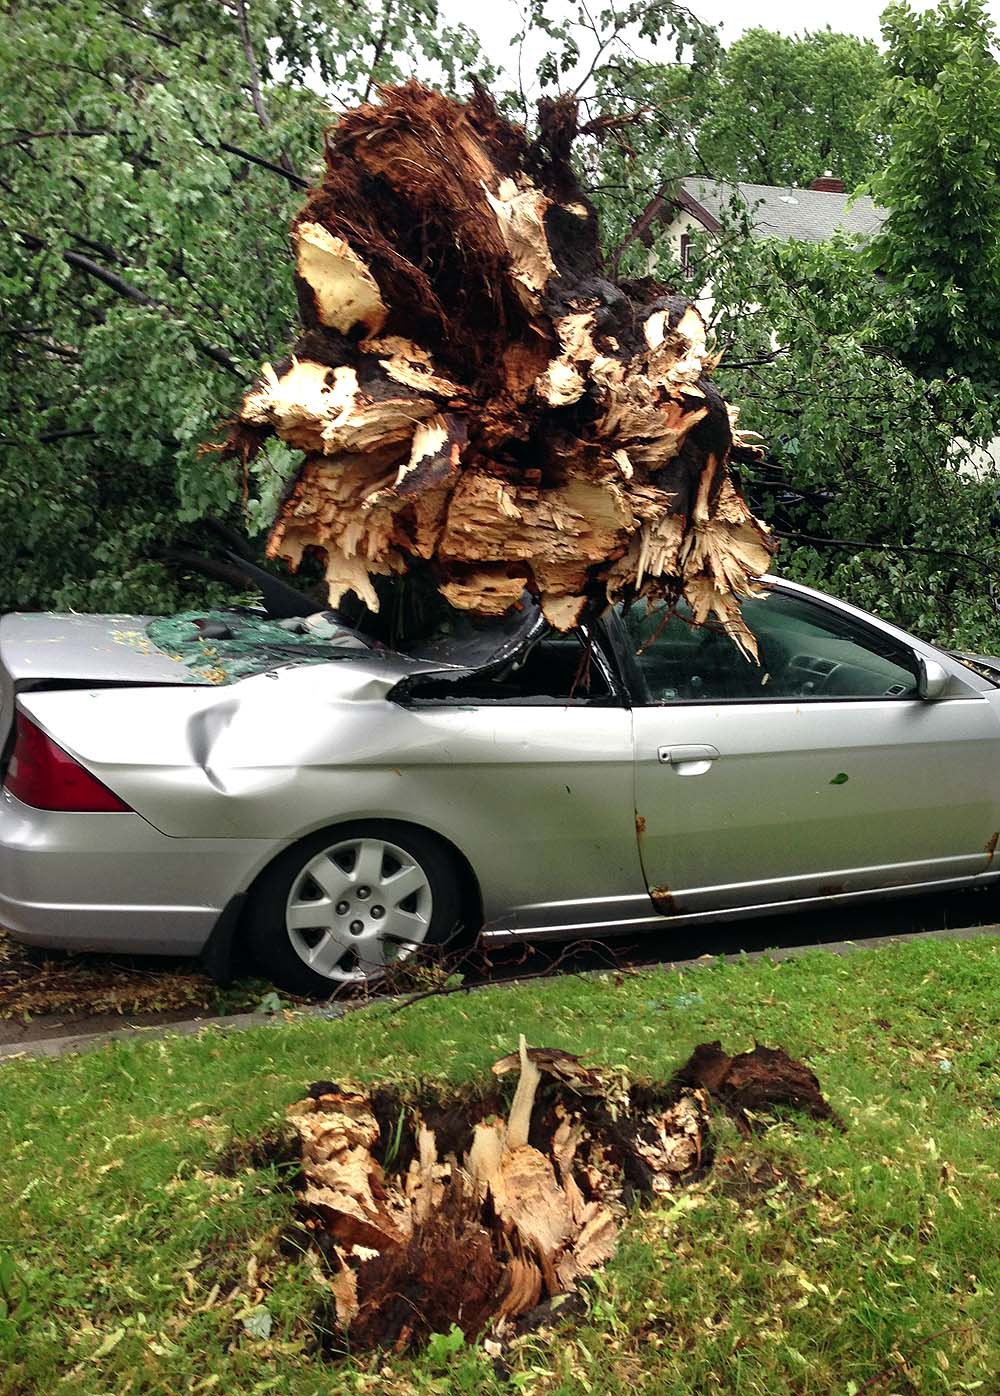 . A huge tree snapped off and landed on a nearby car on Brimhall Street in St. Paul. (Photo courtesy Sara Kerr)